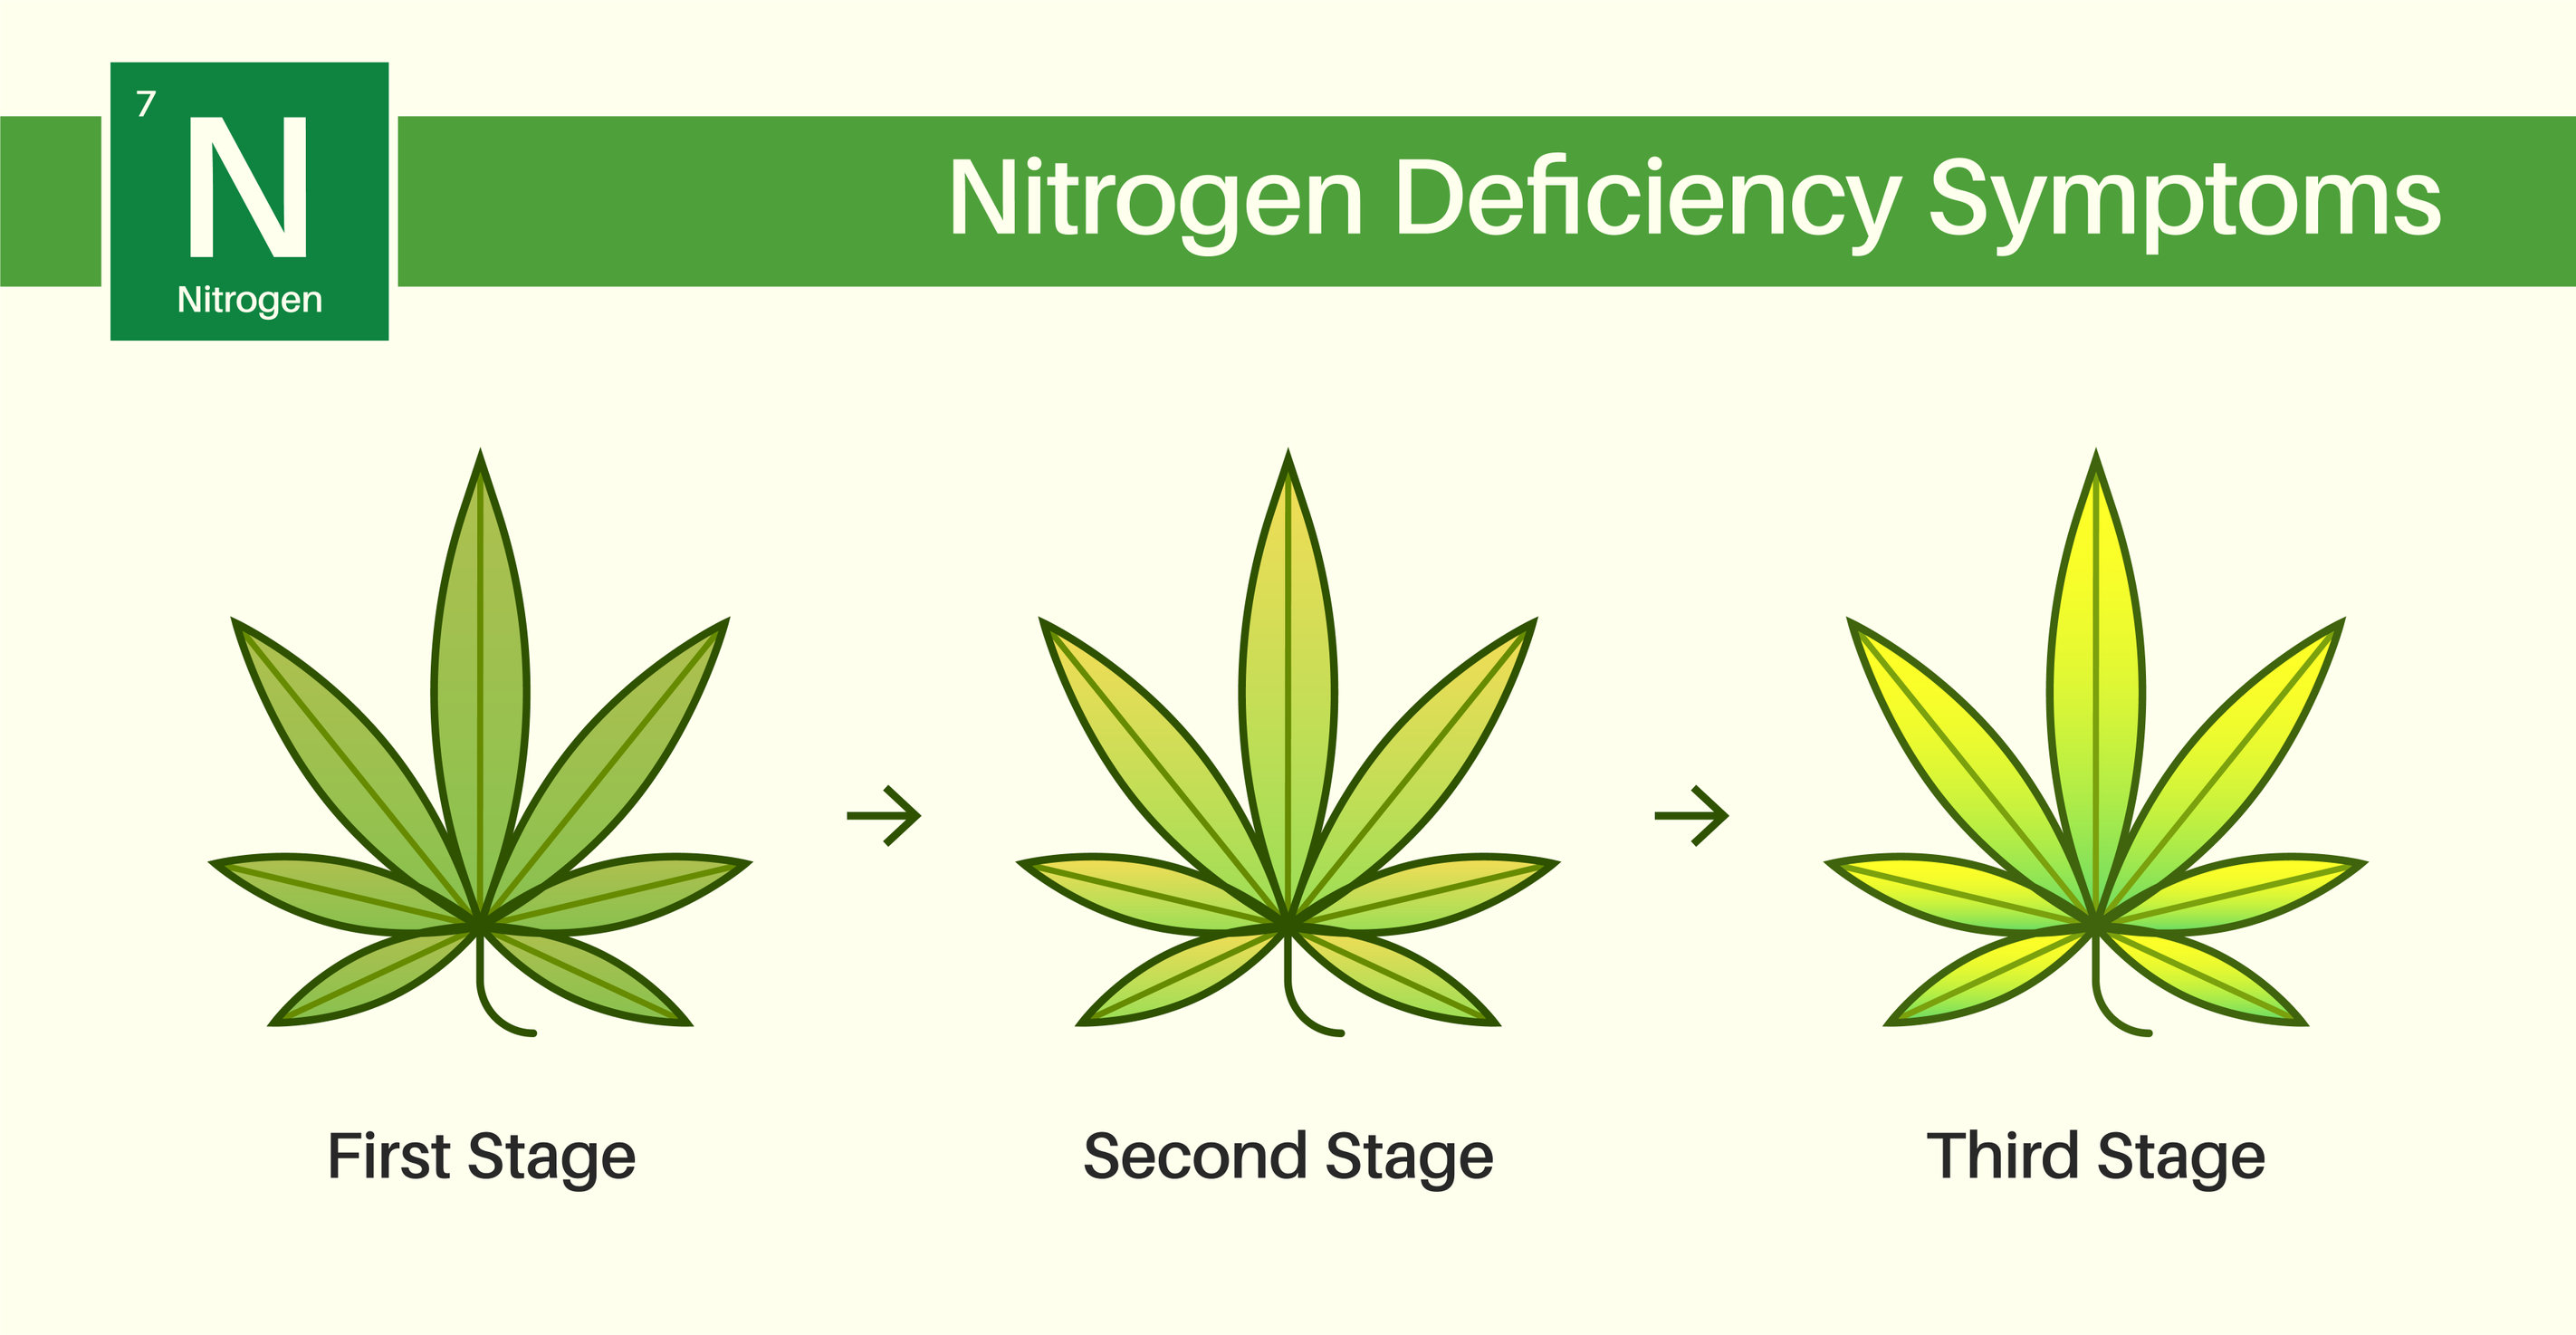 How to Fix a Nitrogen Deficiency in Cannabis